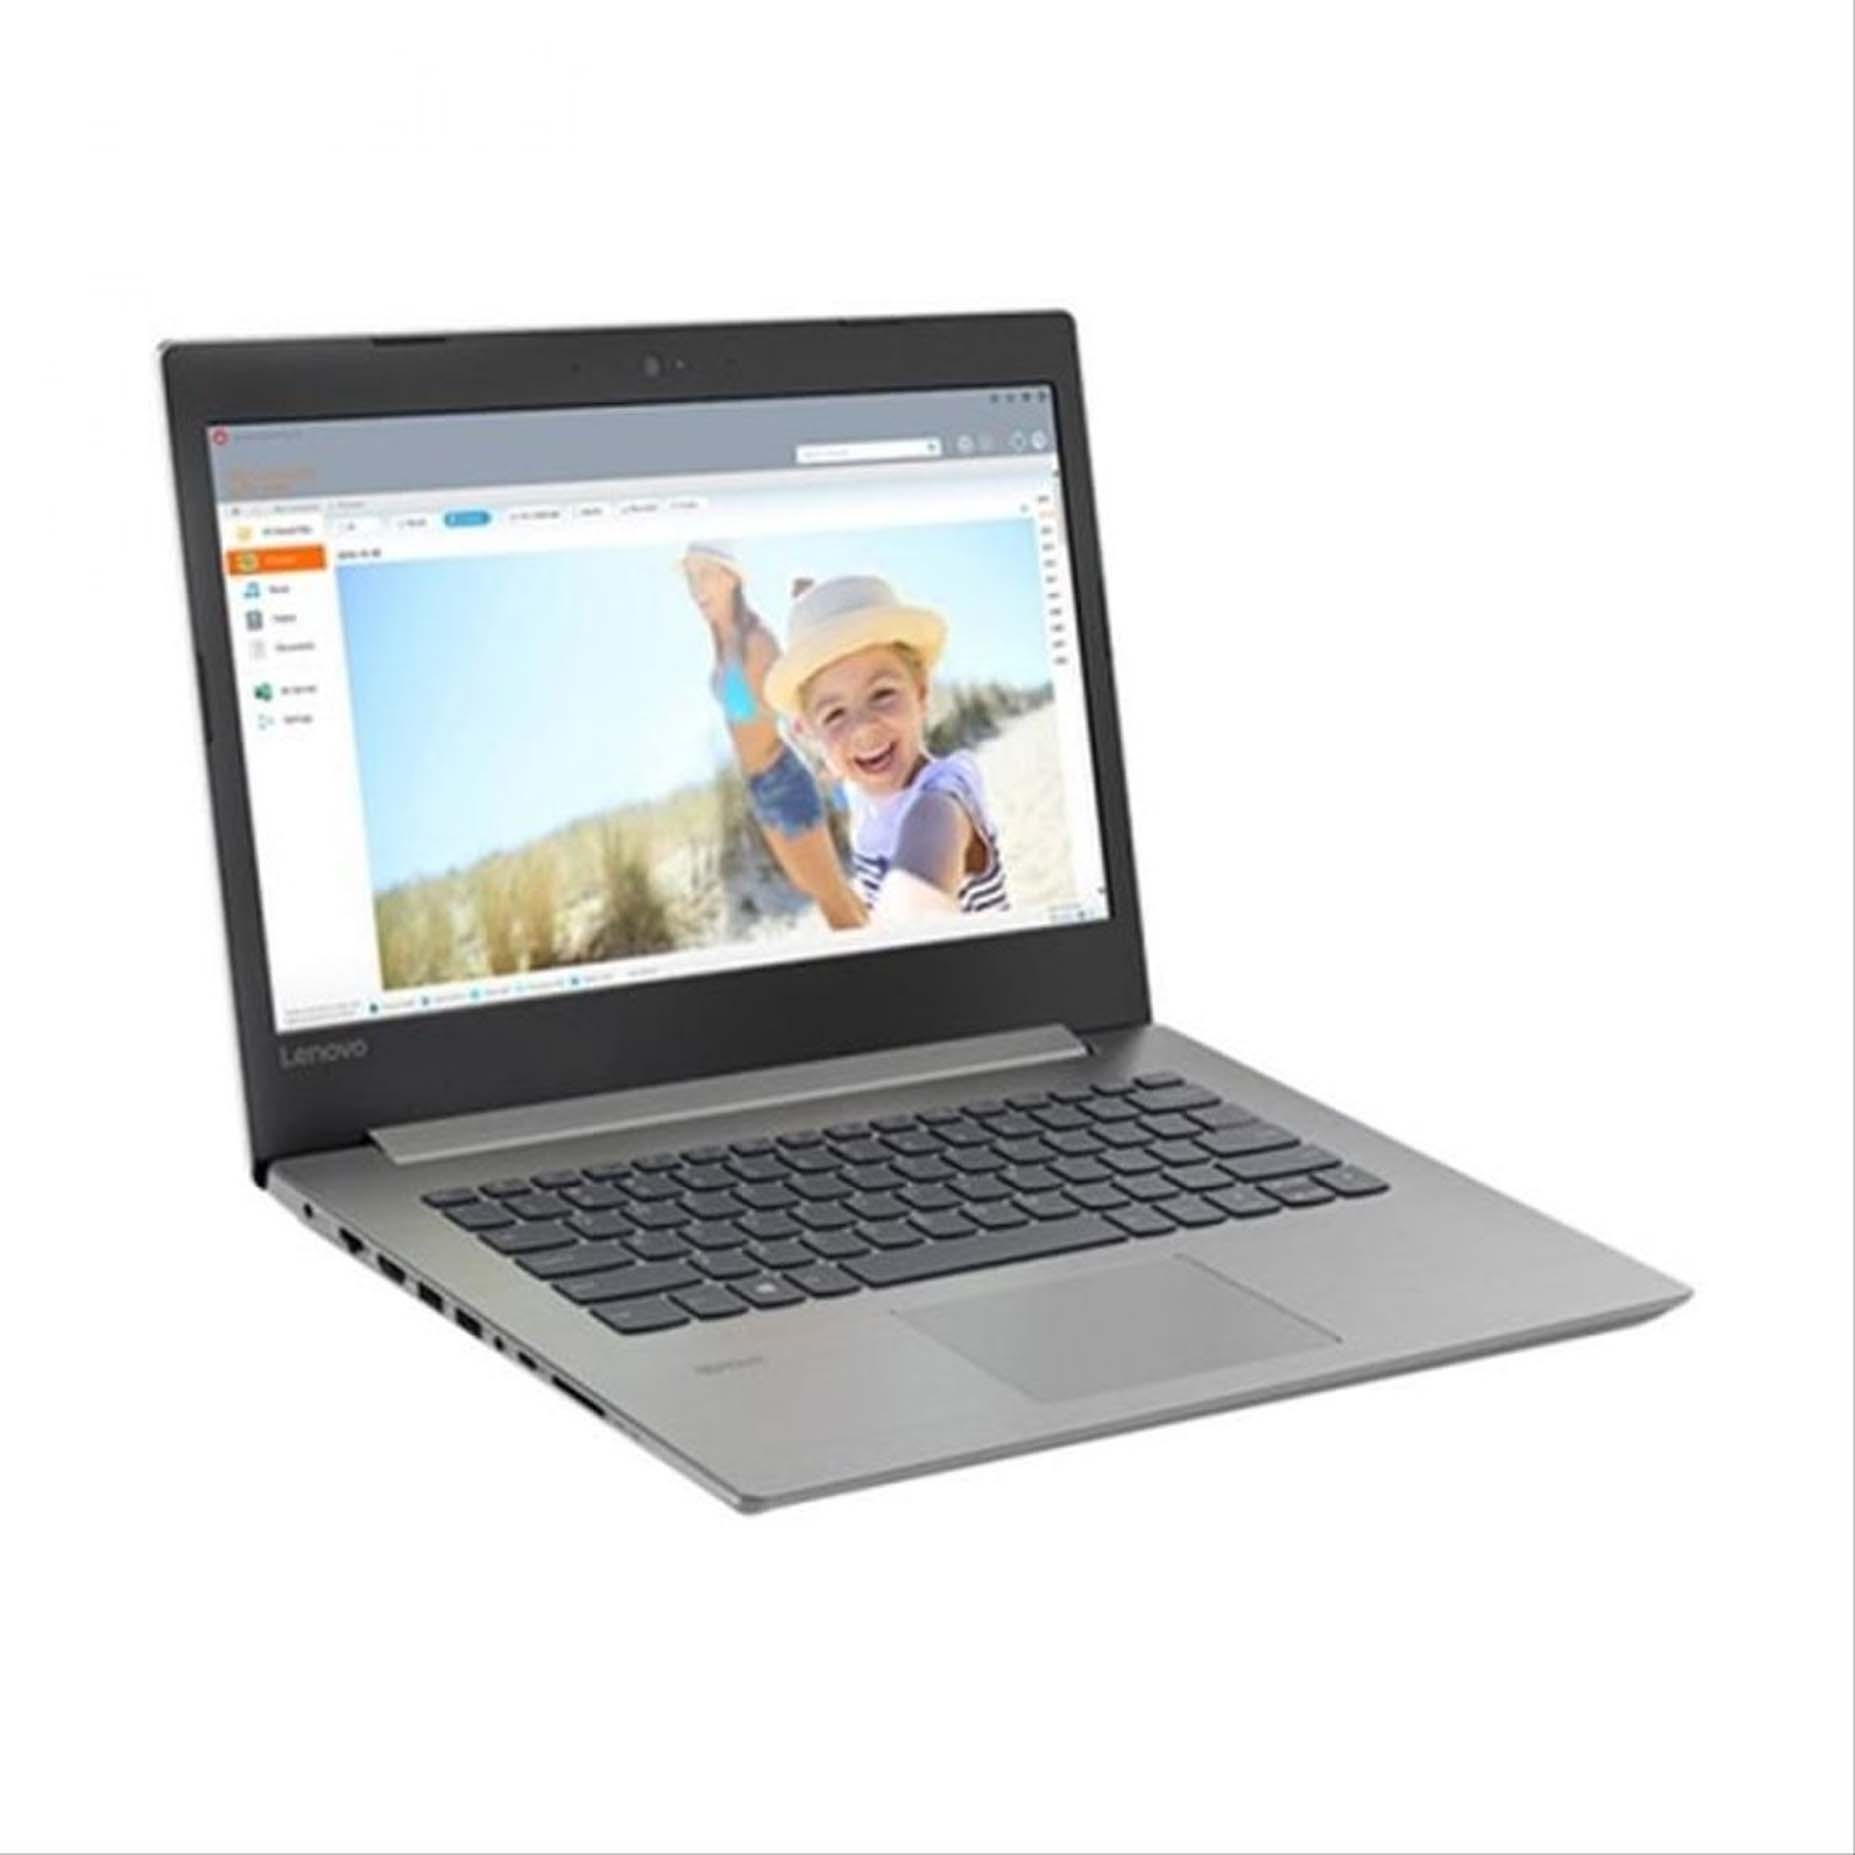 Harga Lenovo IP330-14AST 39ID Laptop AMD Dual Core A9-9425 4GB 1TB 14 Inch Win 10 Grey